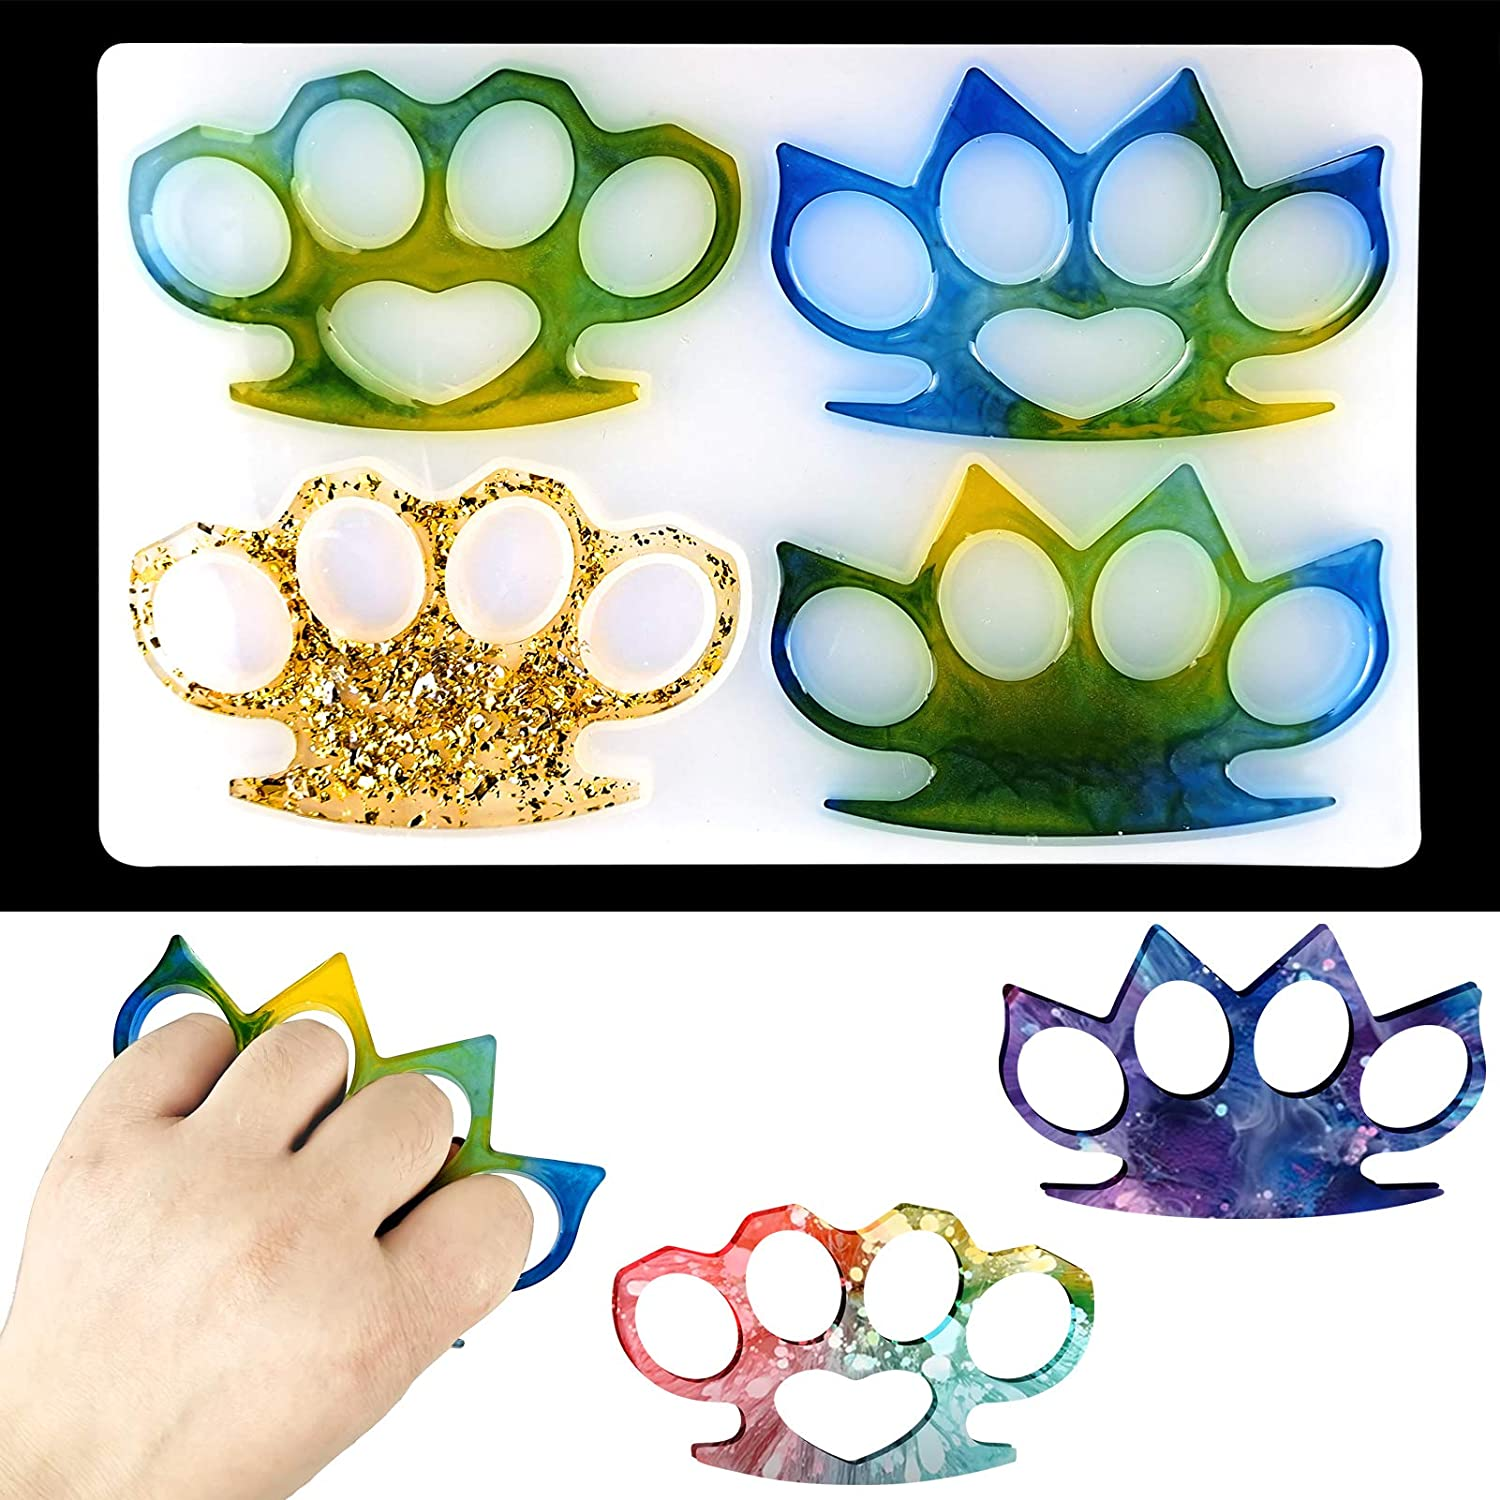 Knuckles Silicone Mold 4 Brass Knuckles Shape Resin Molds with Hole Reusable DIY Craft Epoxy Resin Mold for Jewelry Making Key Chain Handmade Gift Decoration